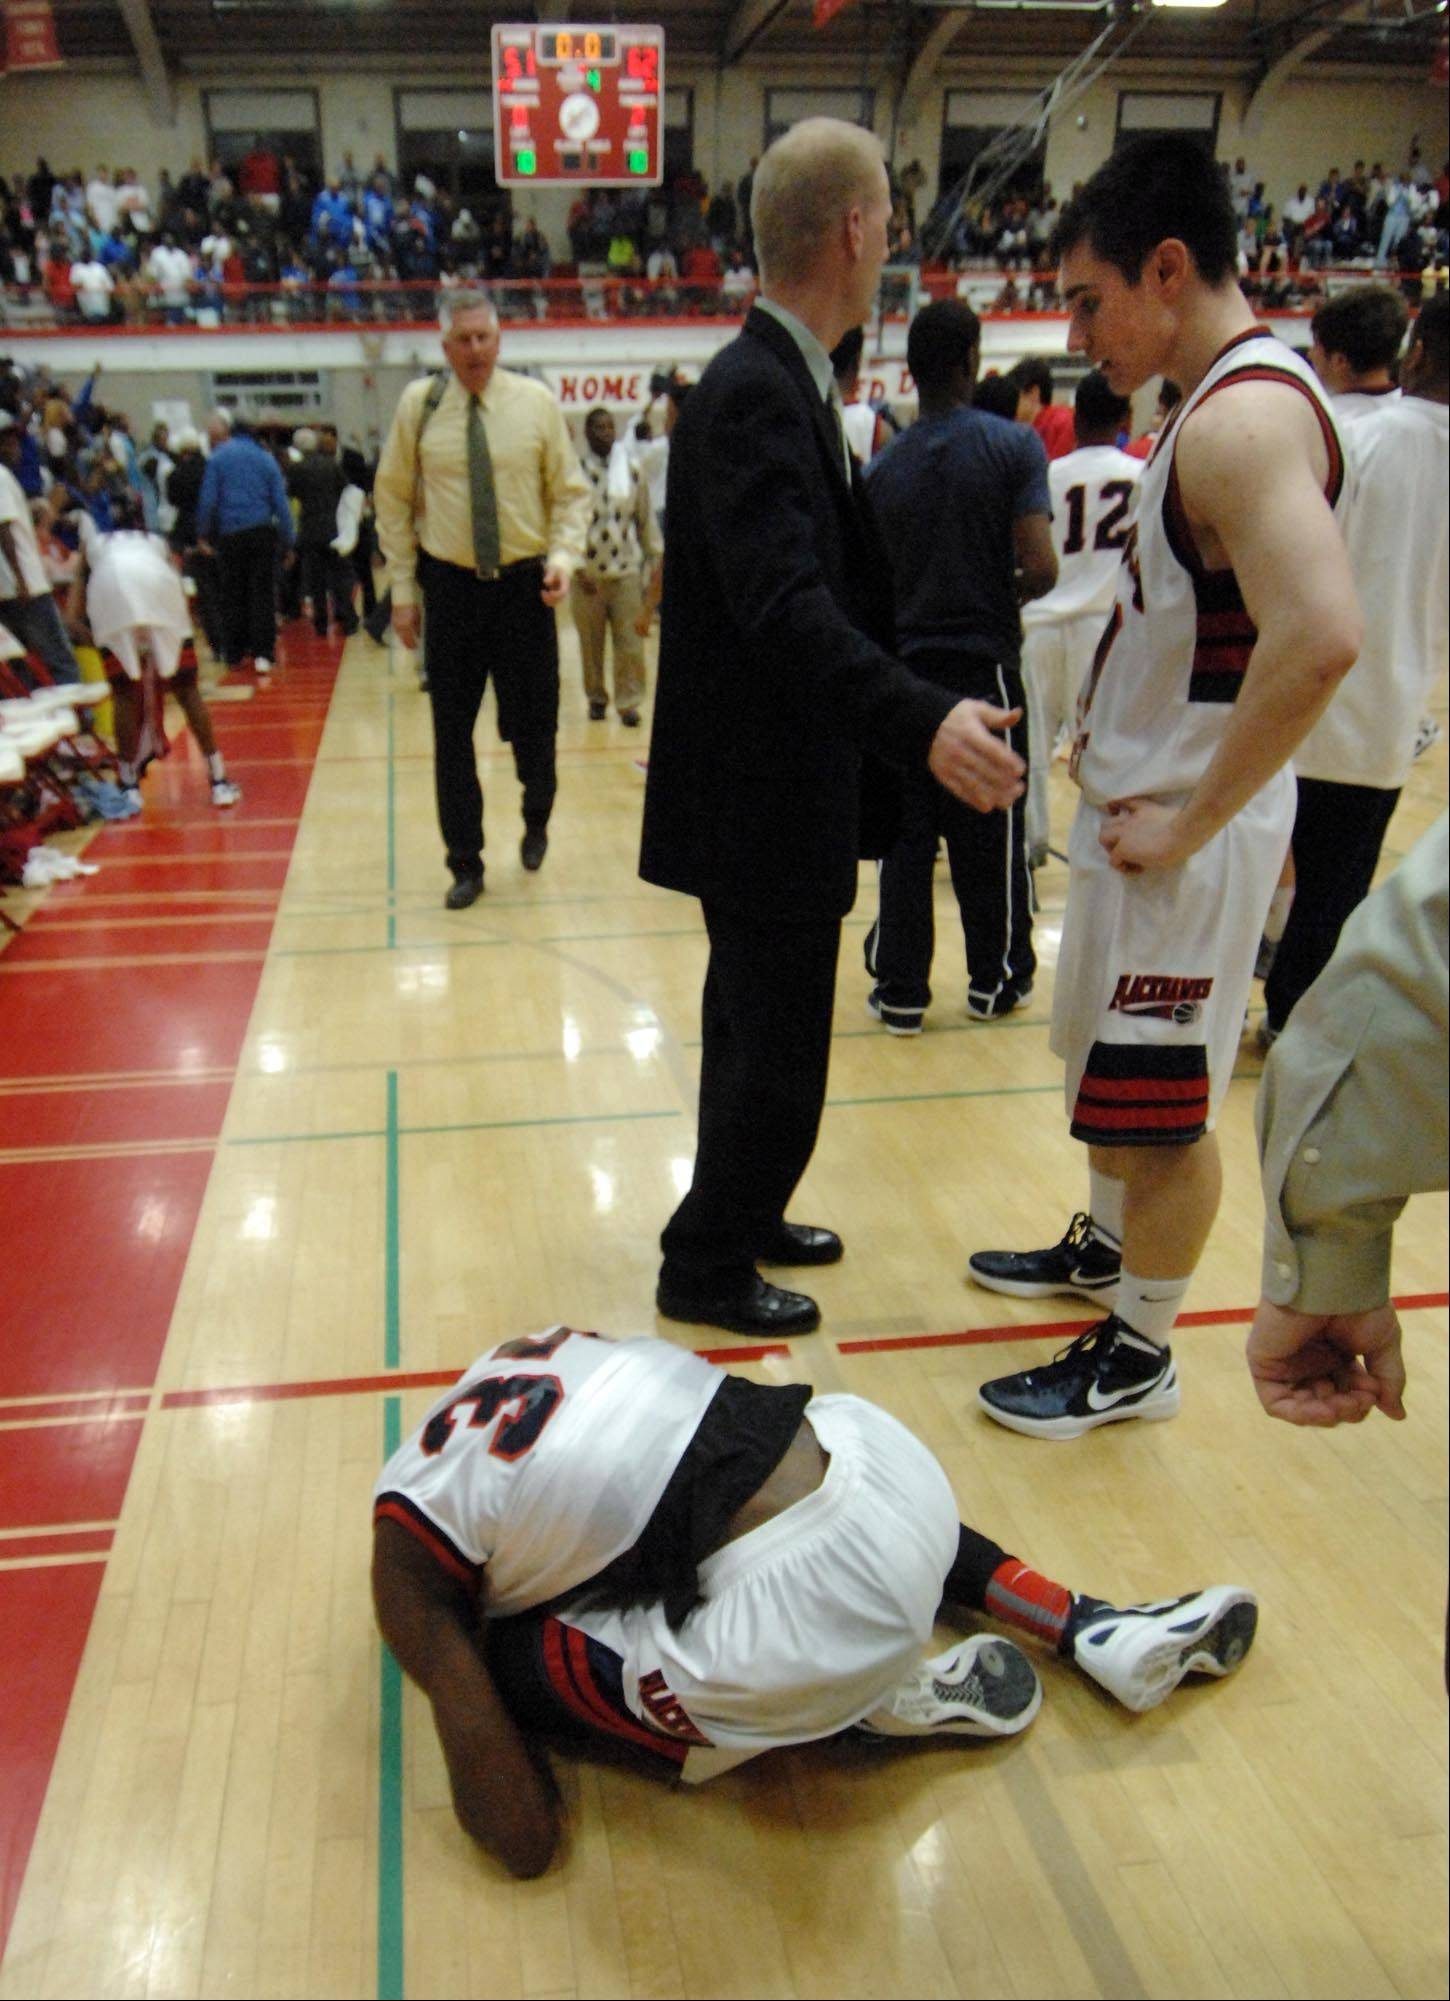 West Aurora's Juwan Starks curls up in a heap on the floor after losing to Proviso East in Tuesday's Hinsdale Central supersectional game.